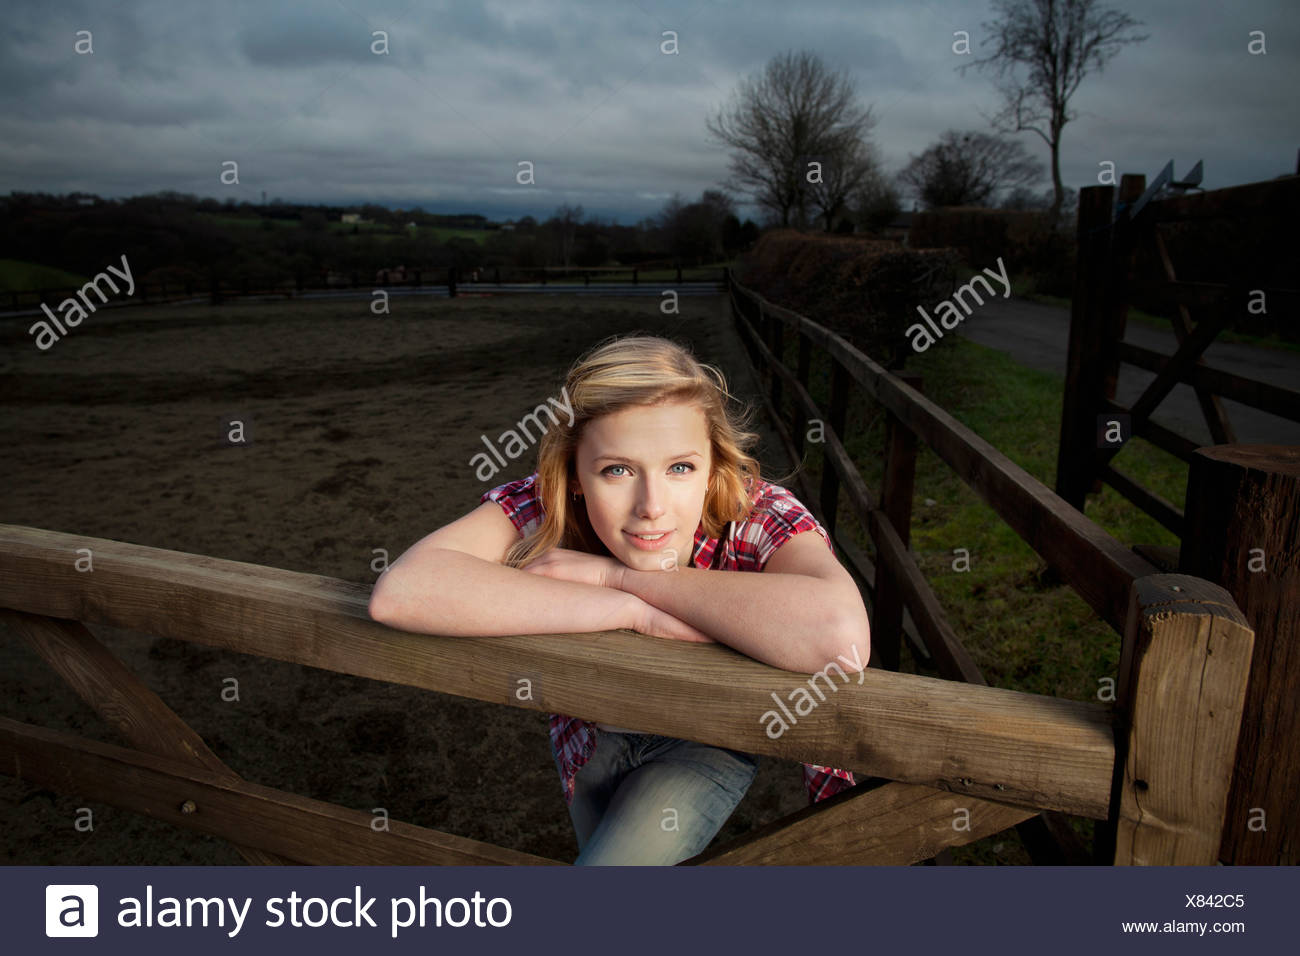 Teenage girl leaning on wooden fence - Stock Image